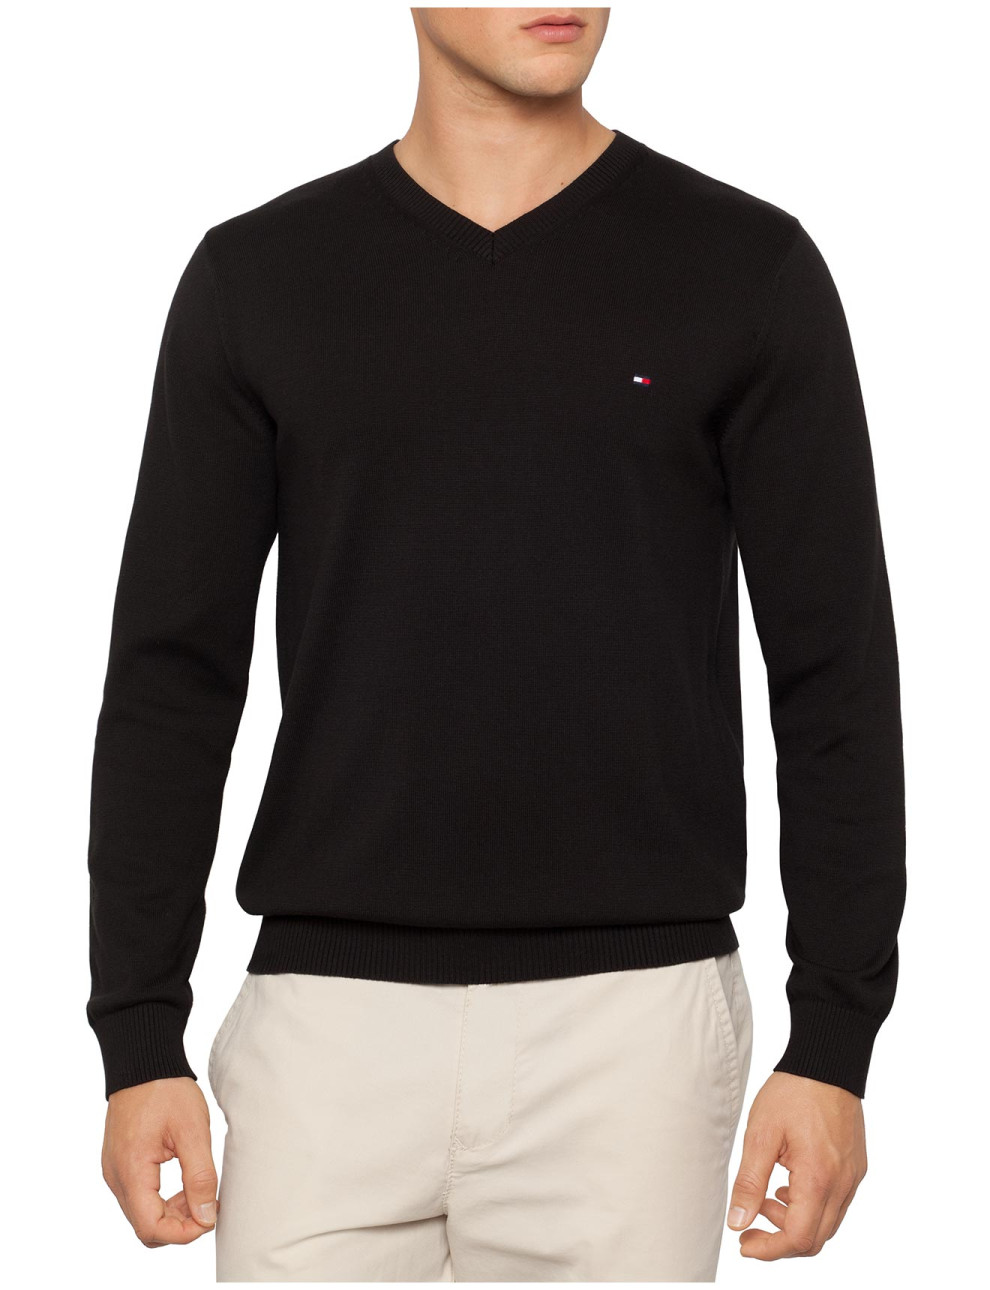 BLACK TOMMY HILFIGER SWEATER VNECK